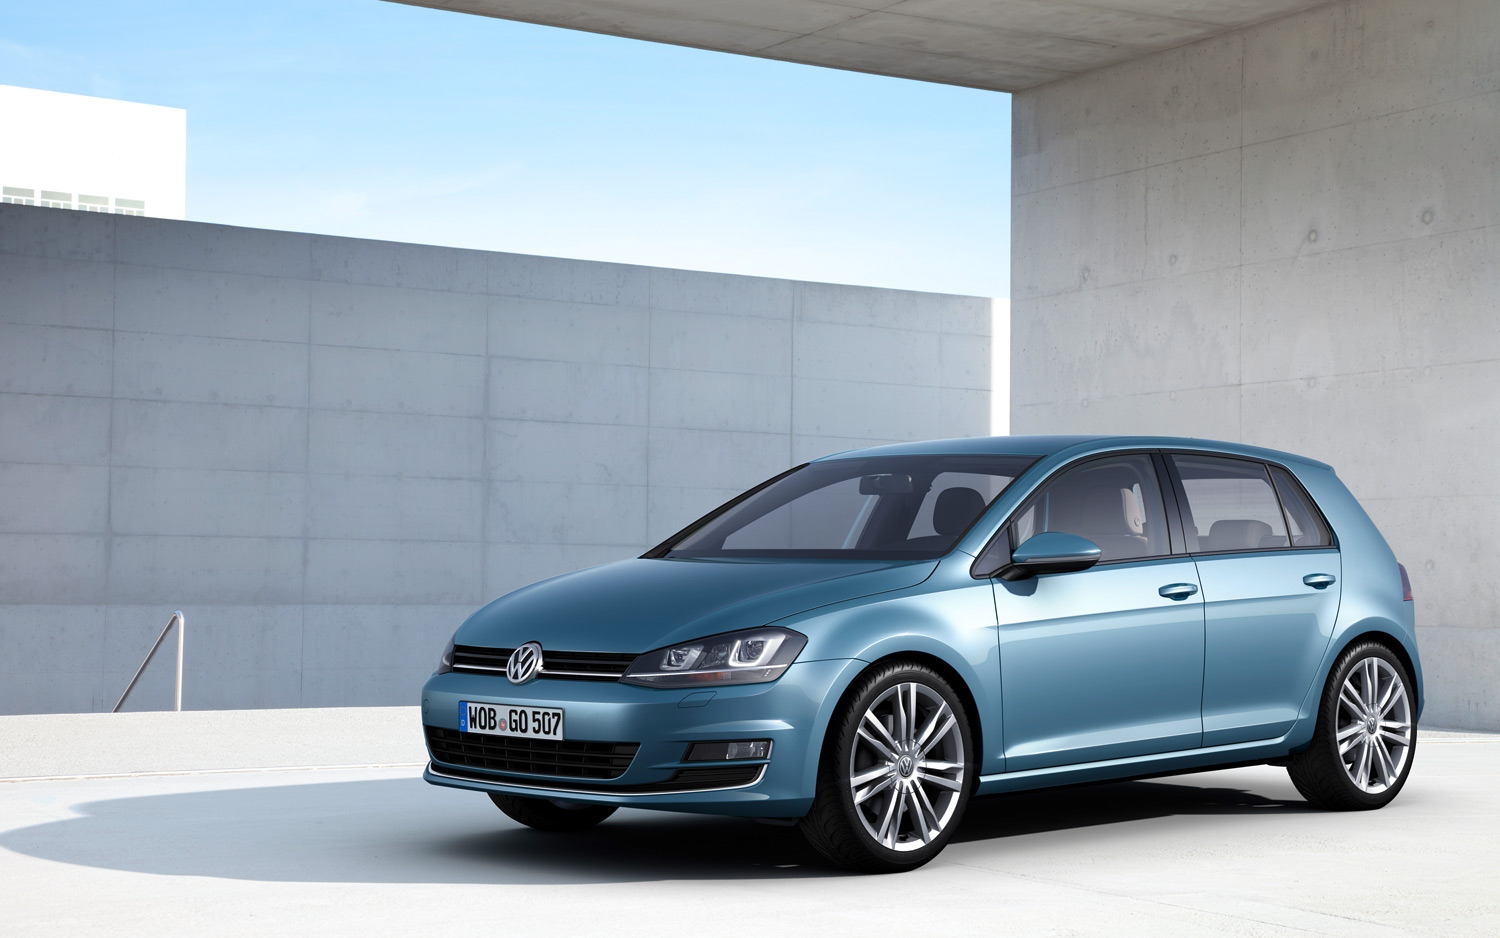 2014 Volkswagen Golf #21